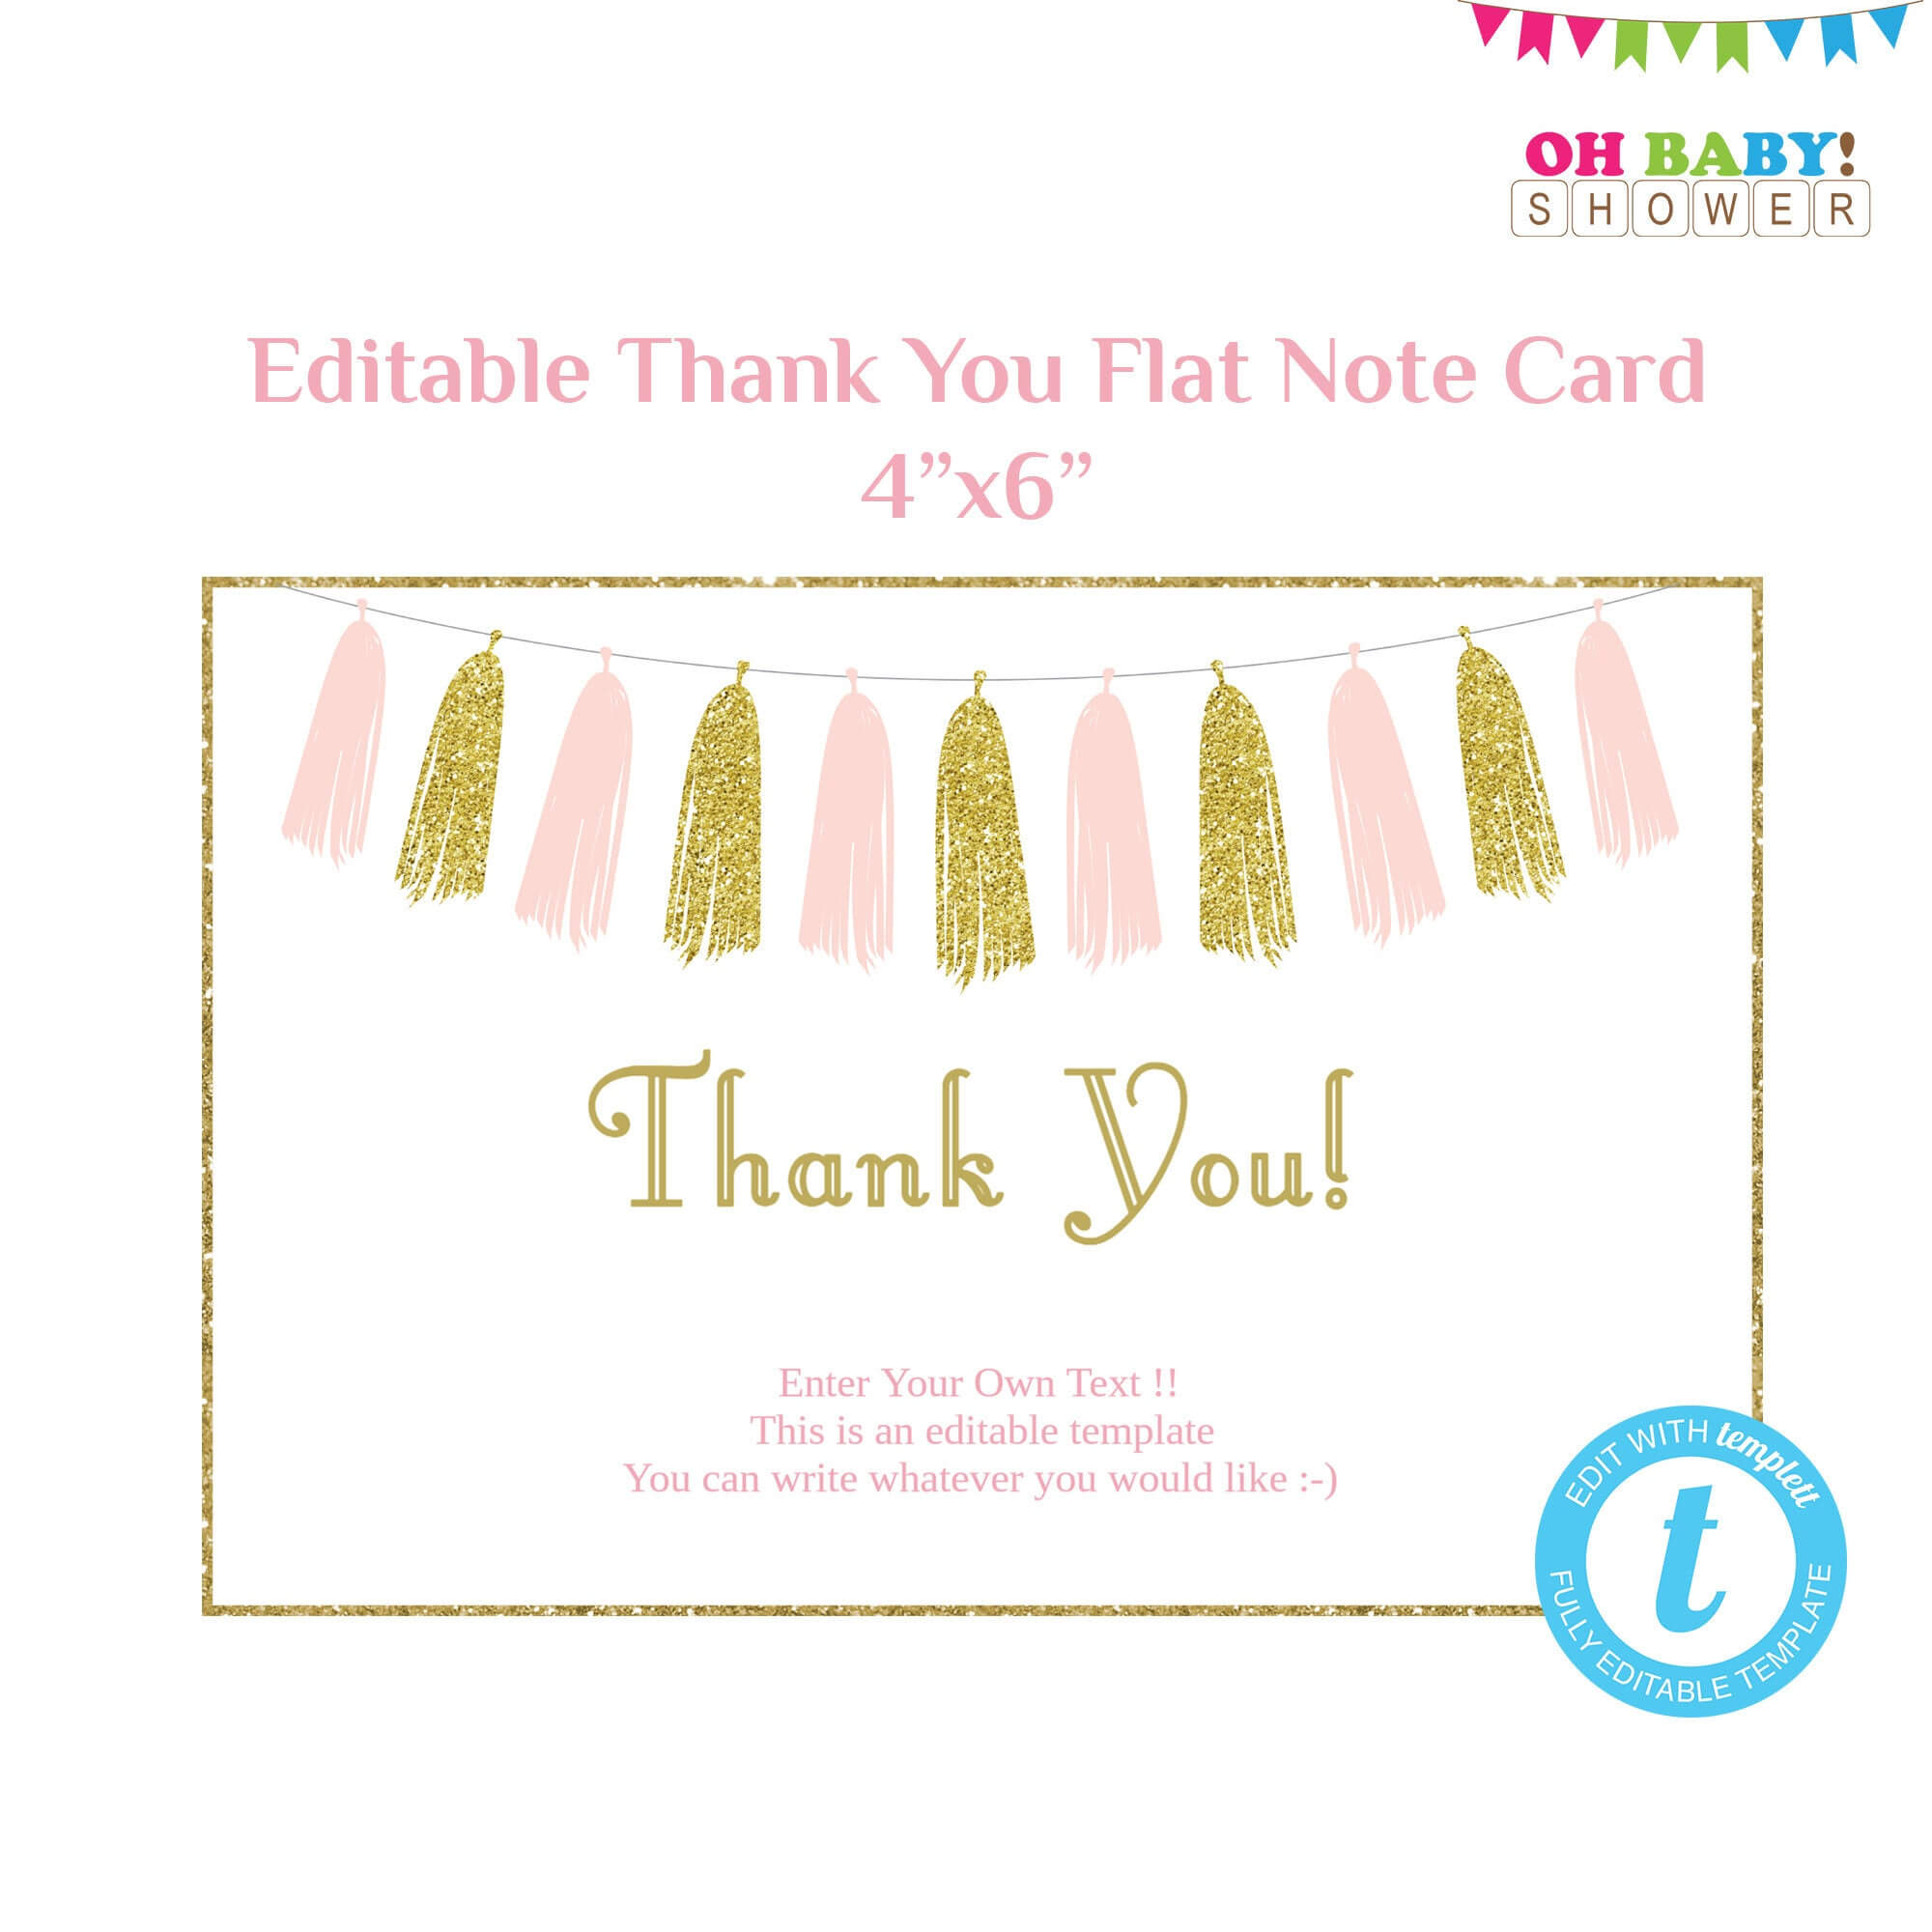 Thank You Card Template Flat Note Card Editable Card Pink Gold Baby Shower  Girl, Printable Thank Yous, Pink And Gold Tassels Download Taspg for Thank You Note Card Template